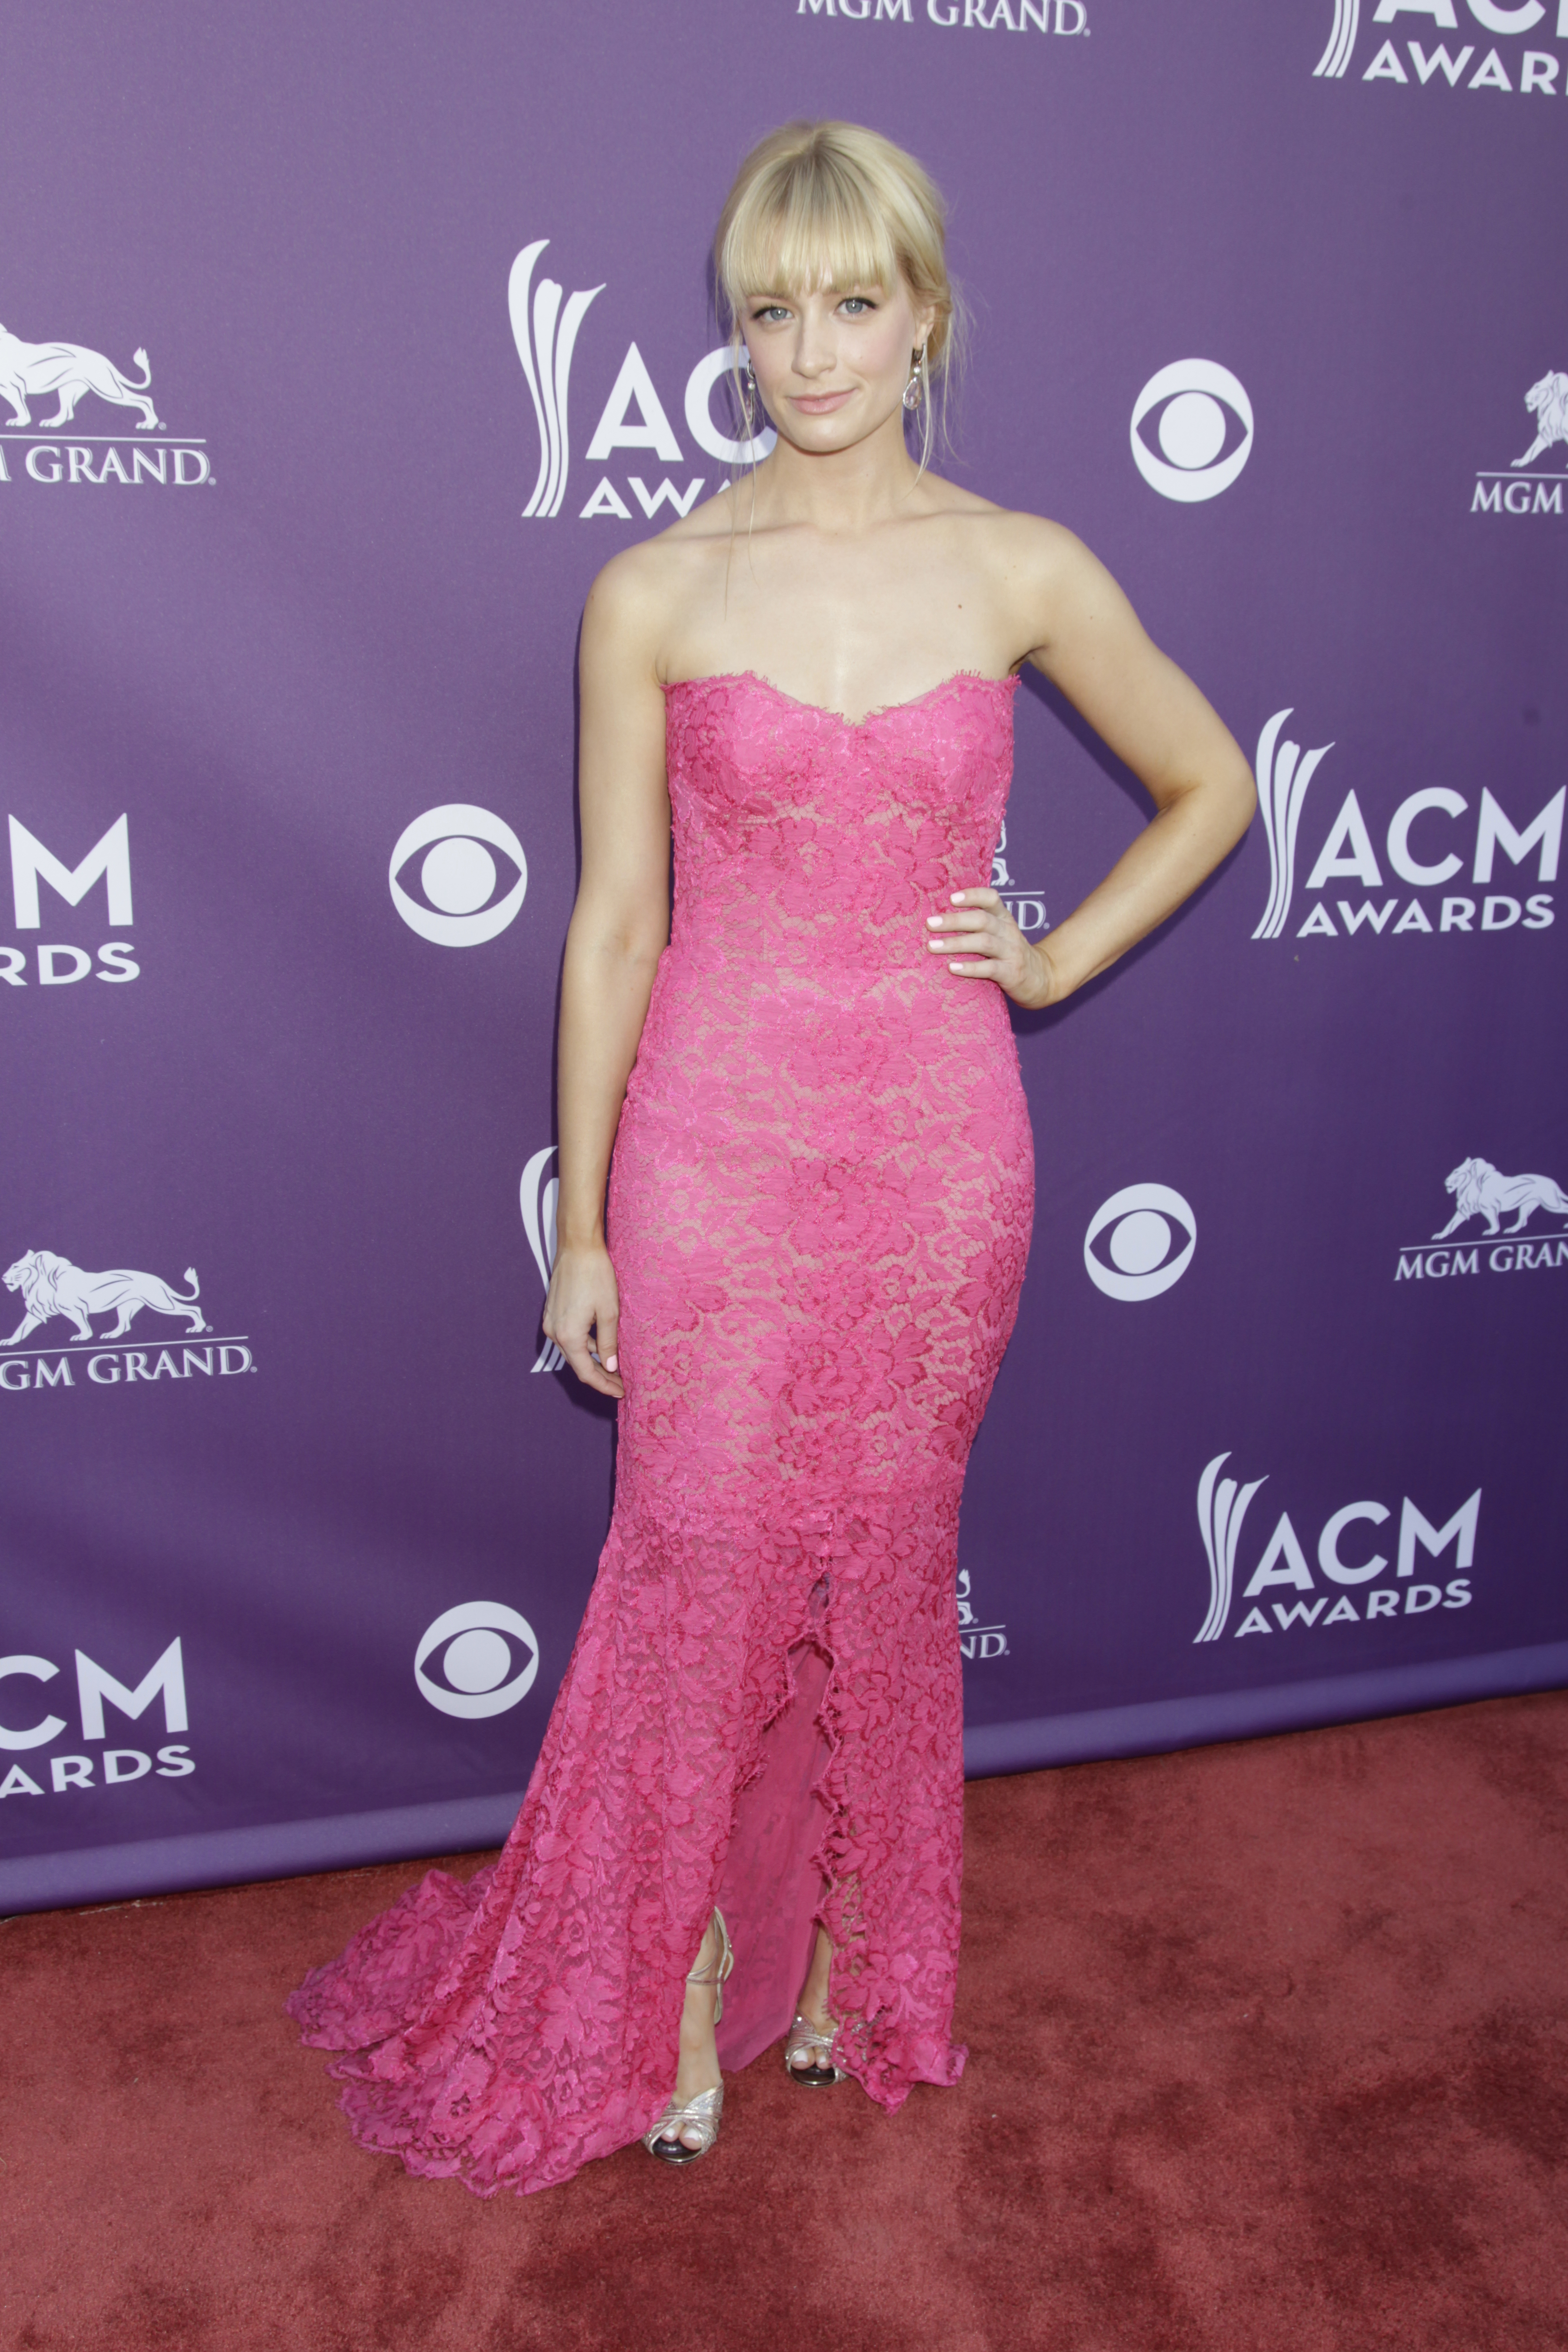 Beth Behrs on the Red Carpet - 48th ACM Awards